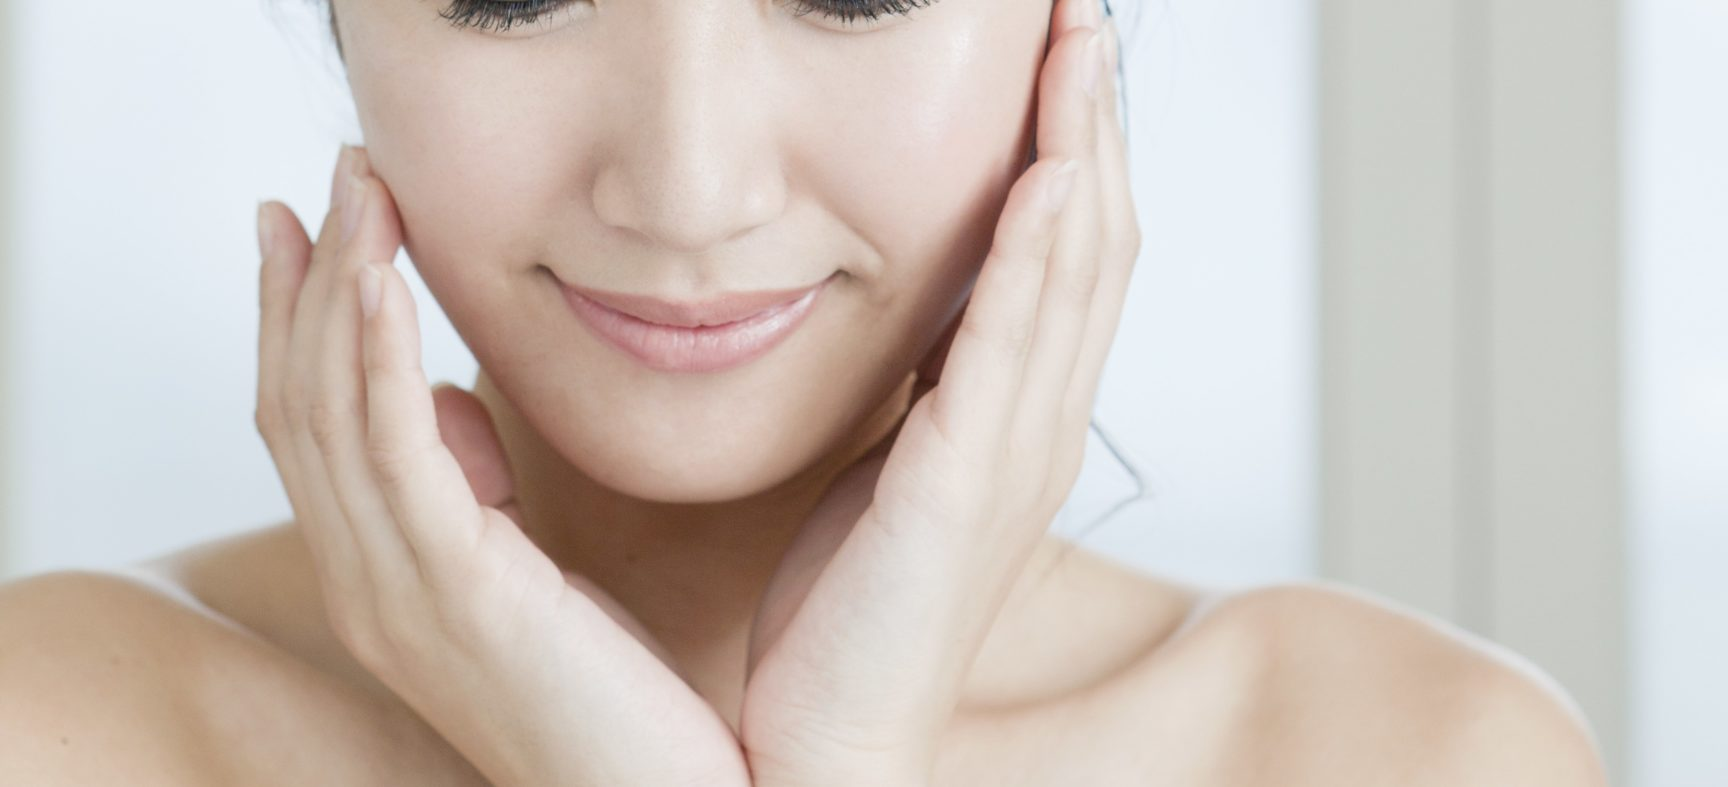 Most Common Skin Care Problems